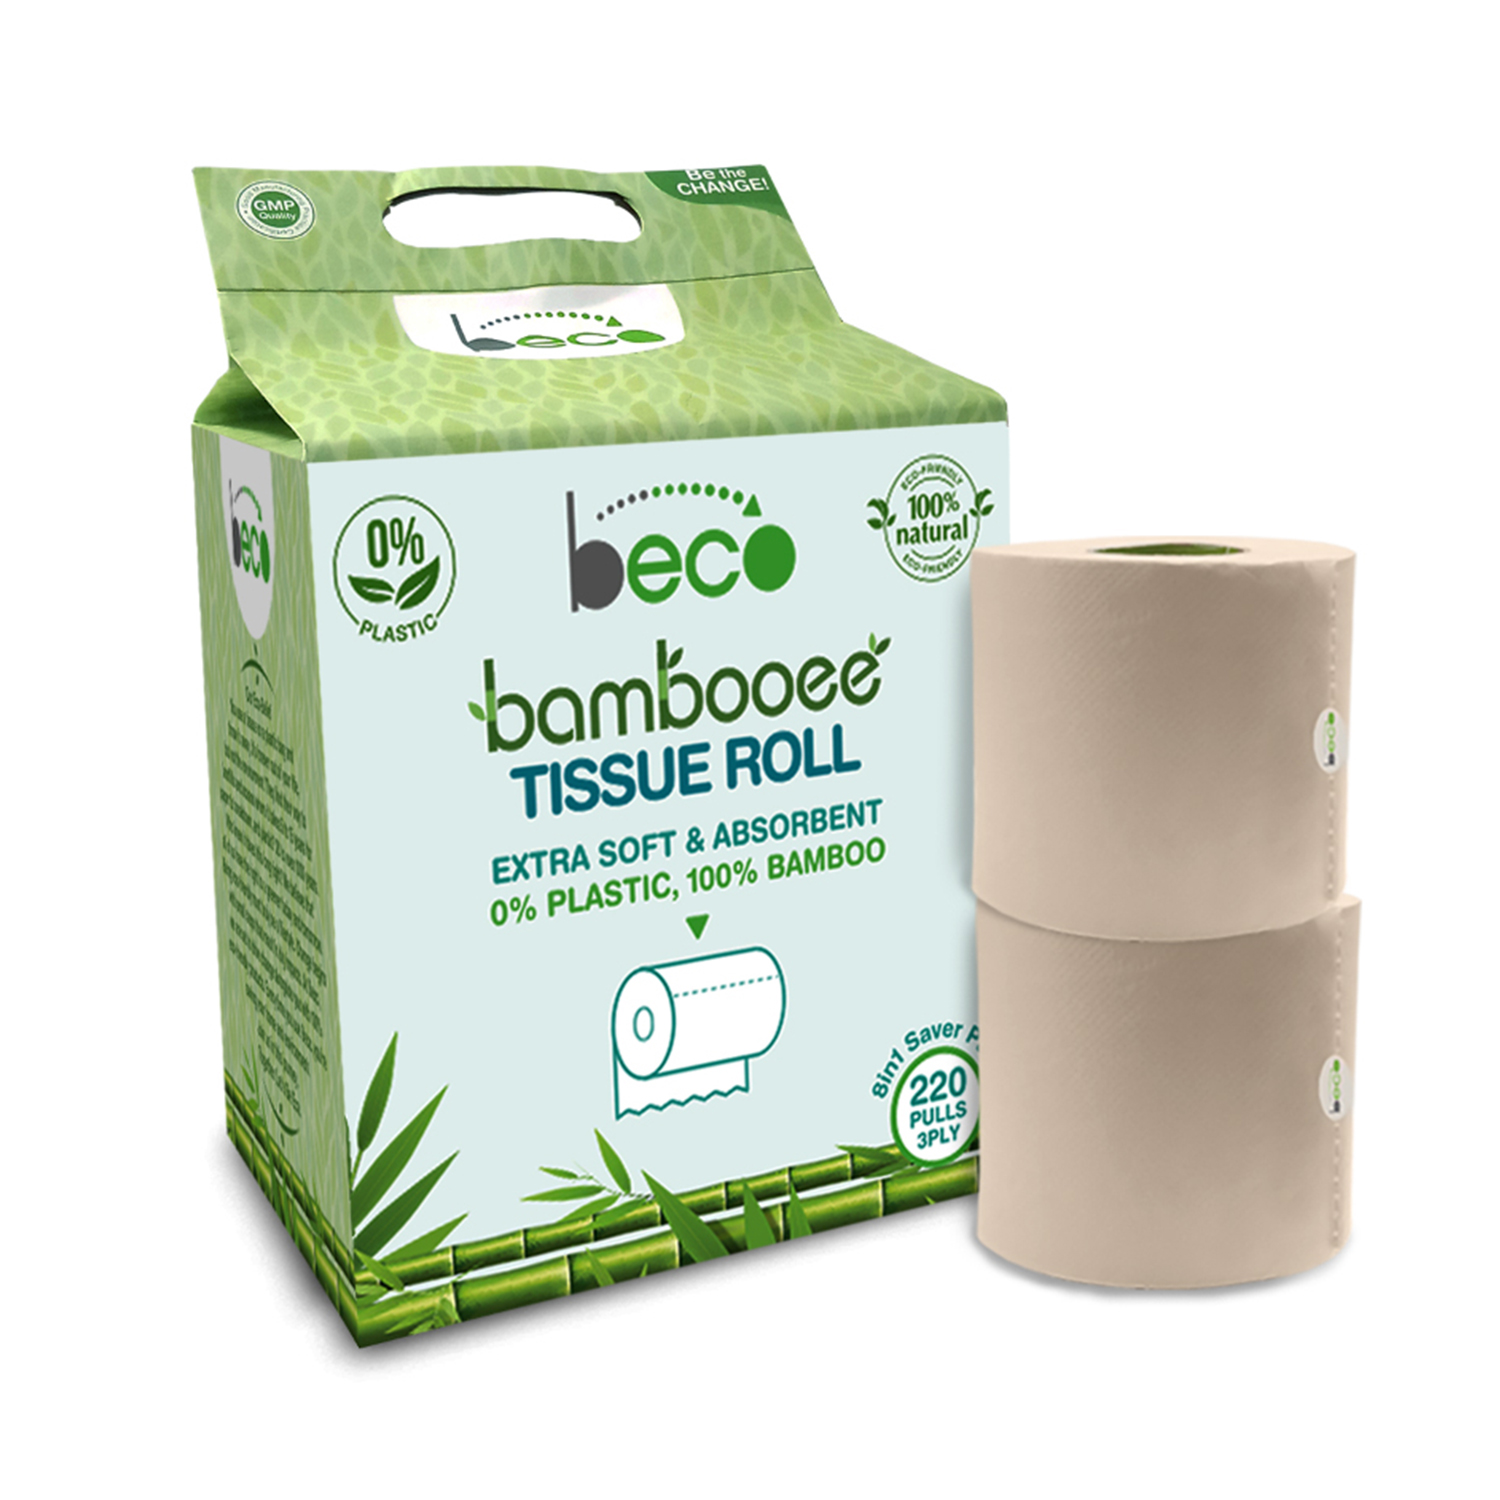 Beco bamboo tissue roll